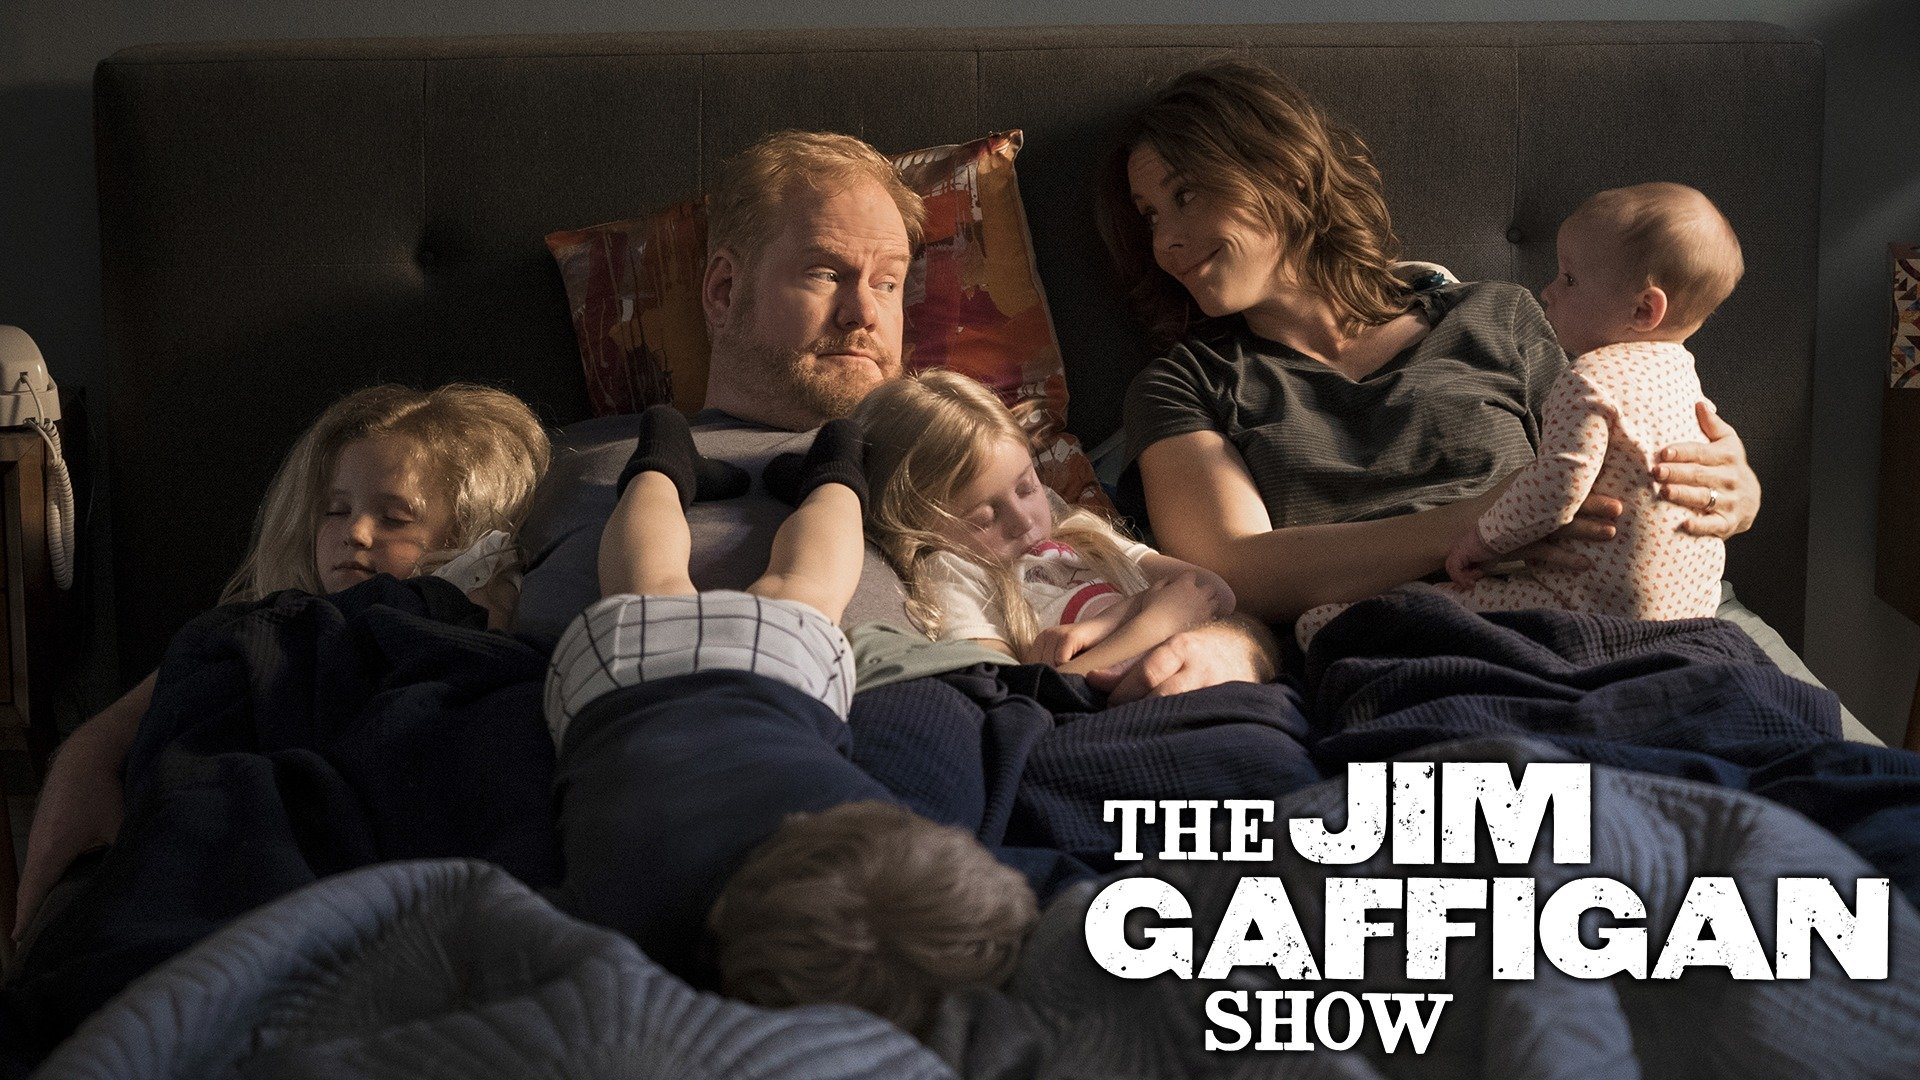 The Jim Gaffigan Show (TV Land)